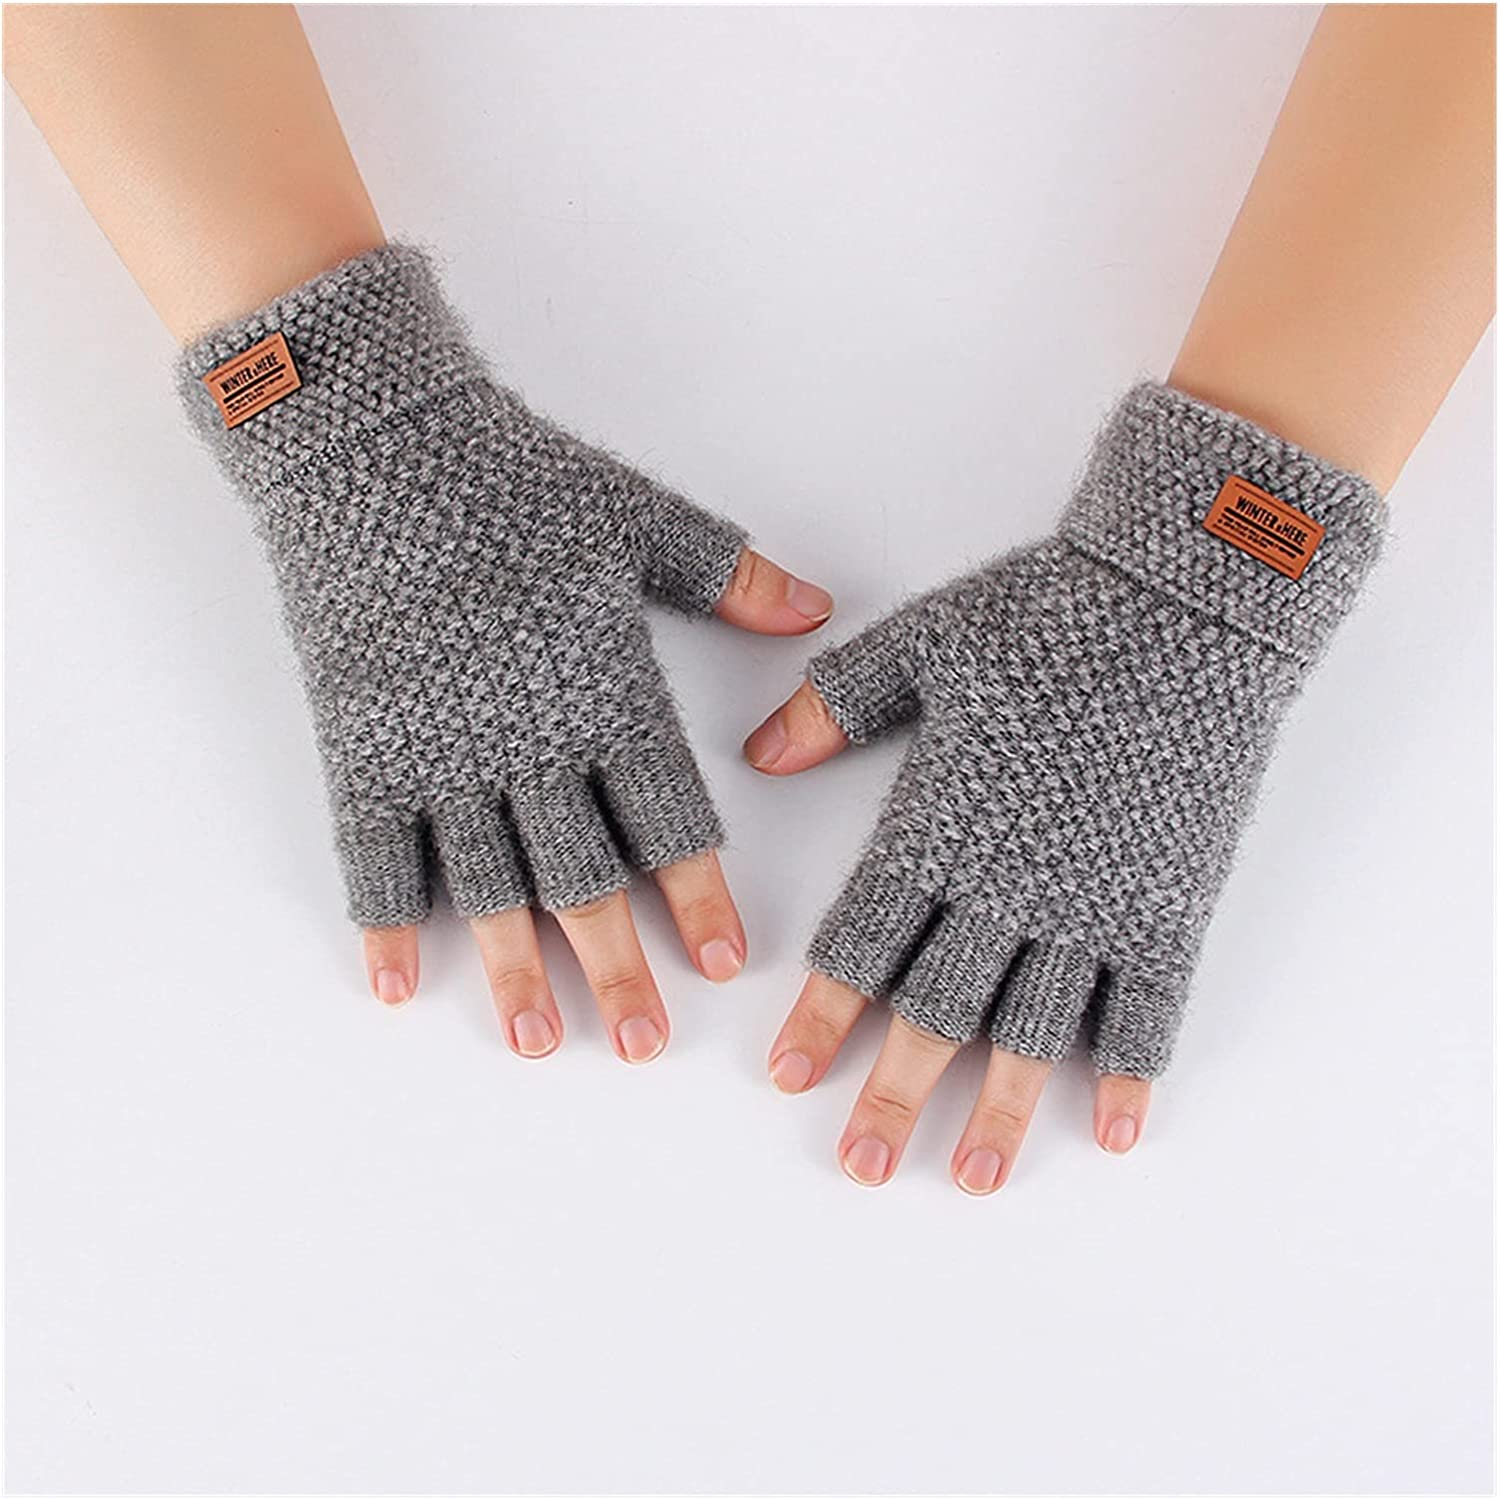 YSJJSQZ Winter Gloves New Men's Winter Half-Finger Fingerless Clamshell Knitted Warmth and Thick Fluffy Outdoor Riding Sports Driving Gloves (Color : A336-1)